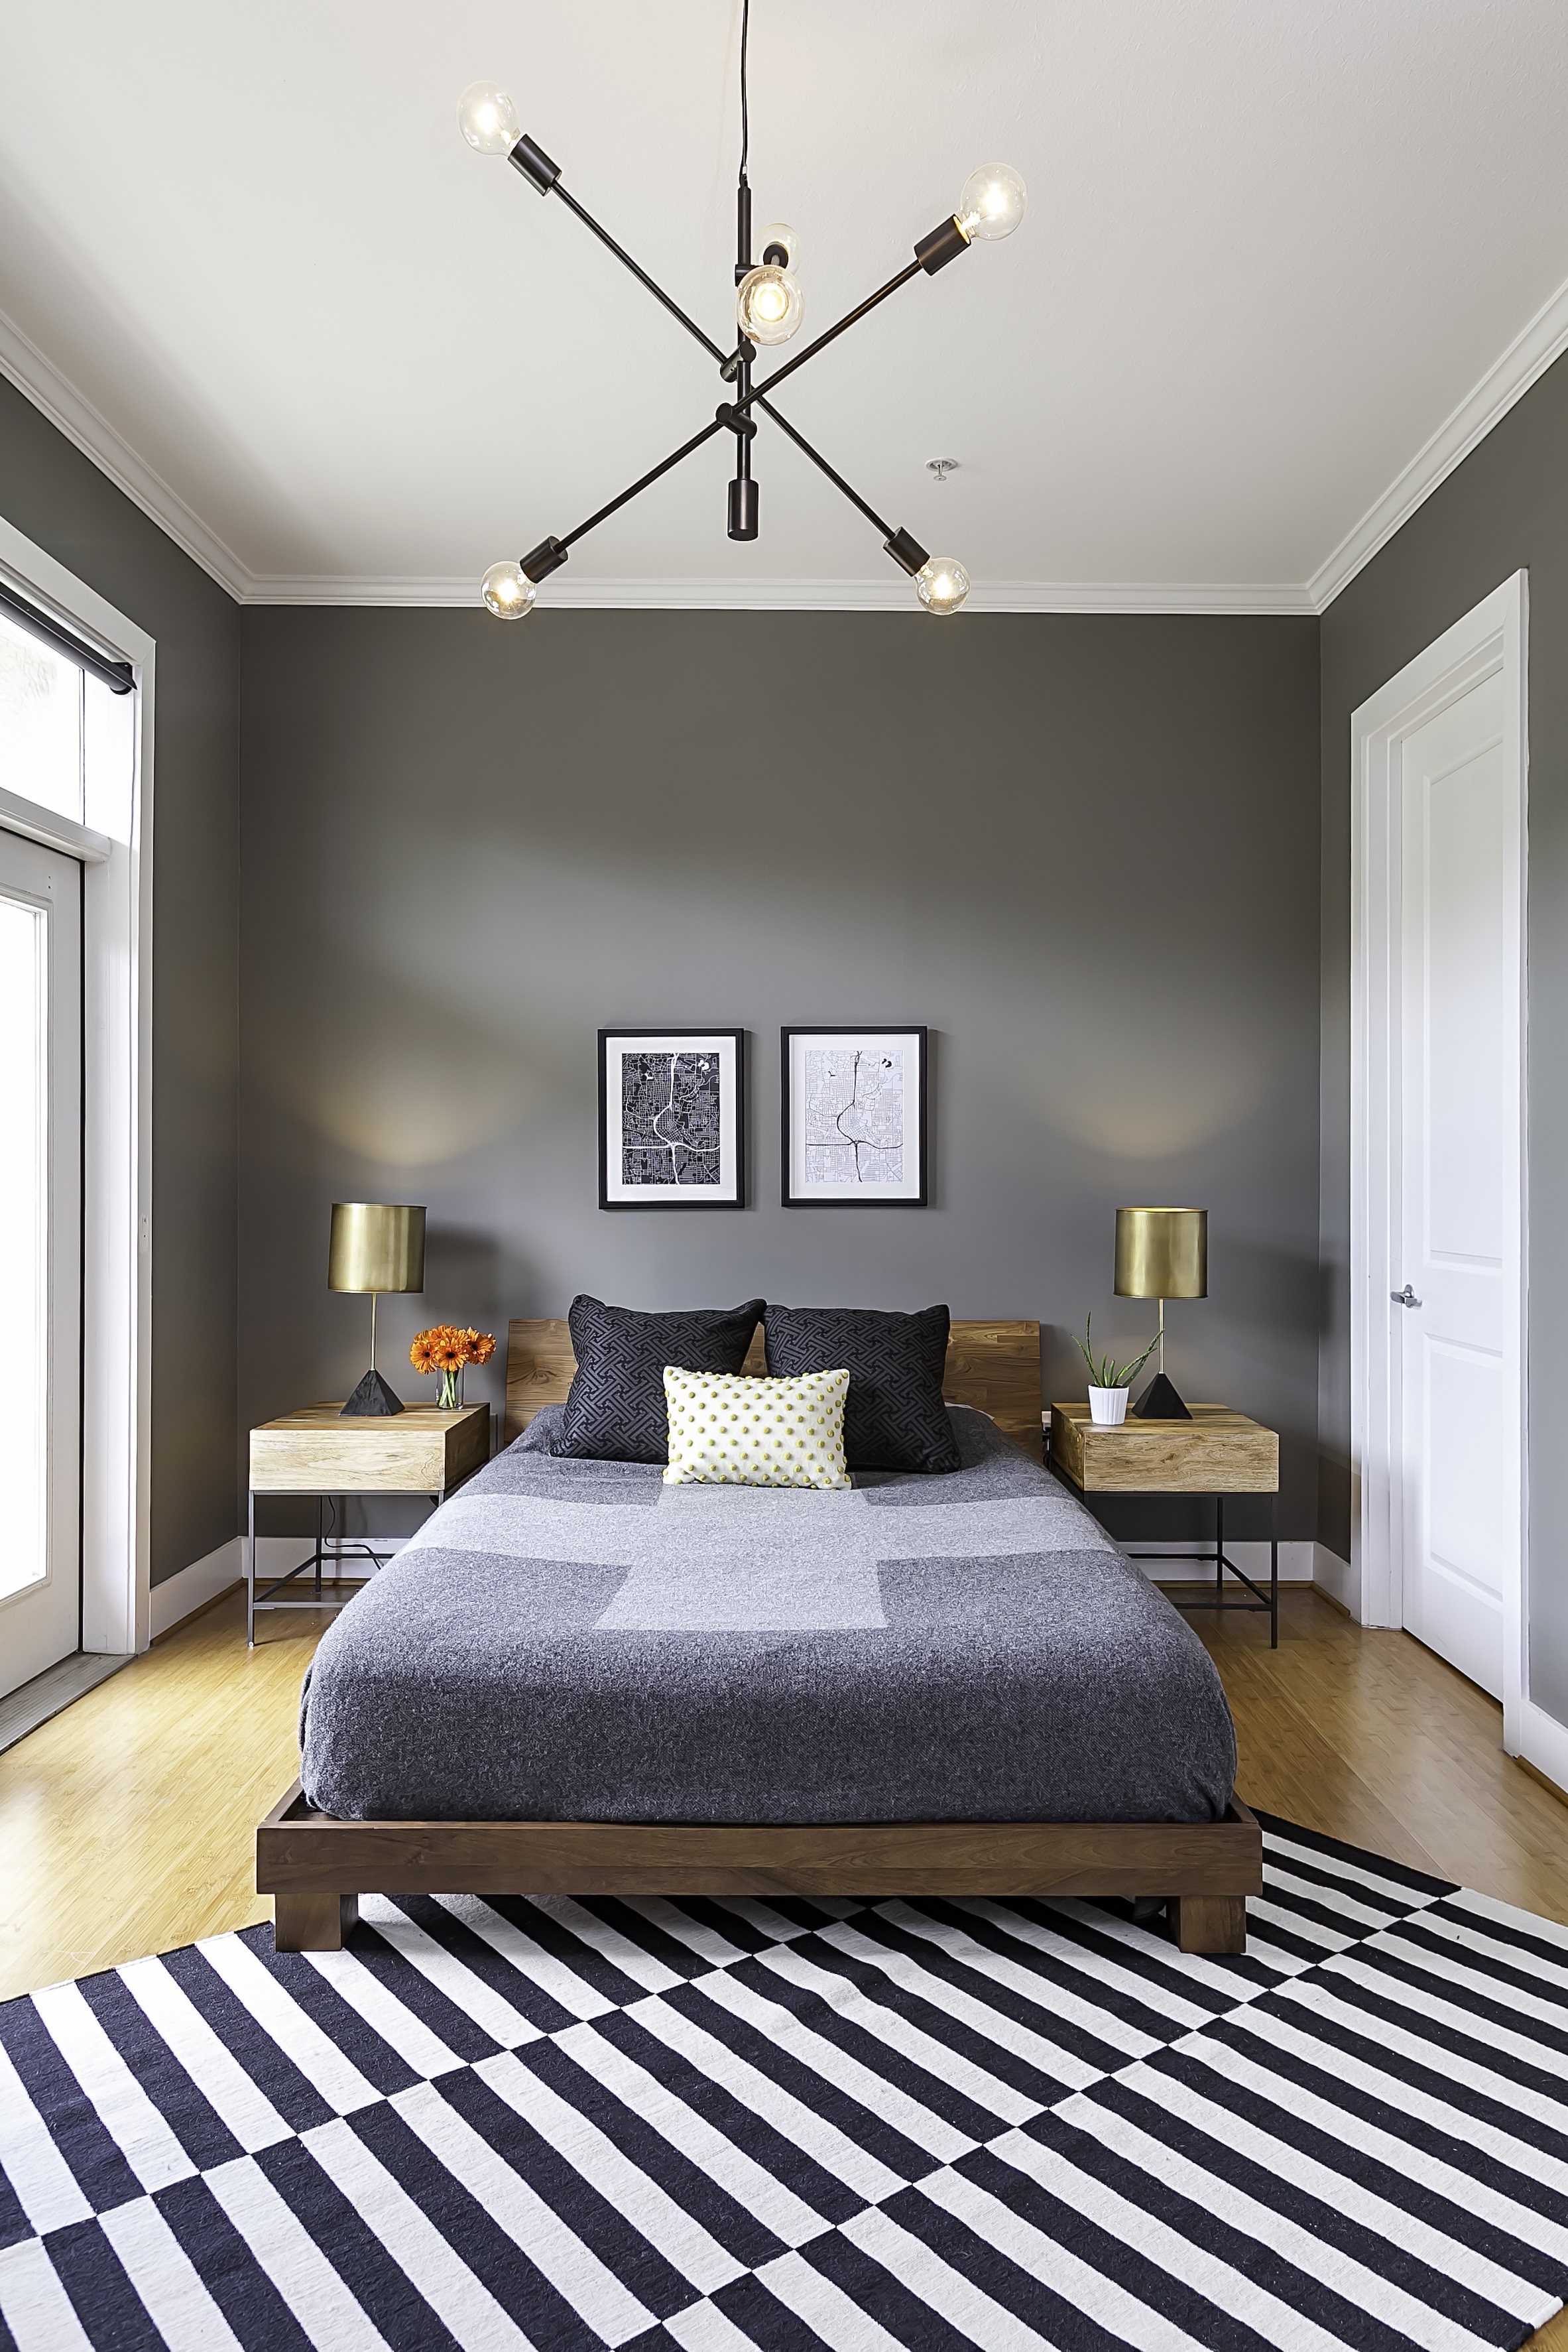 Gray Paint In Contemporary Bedroom (Image 6 of 22)